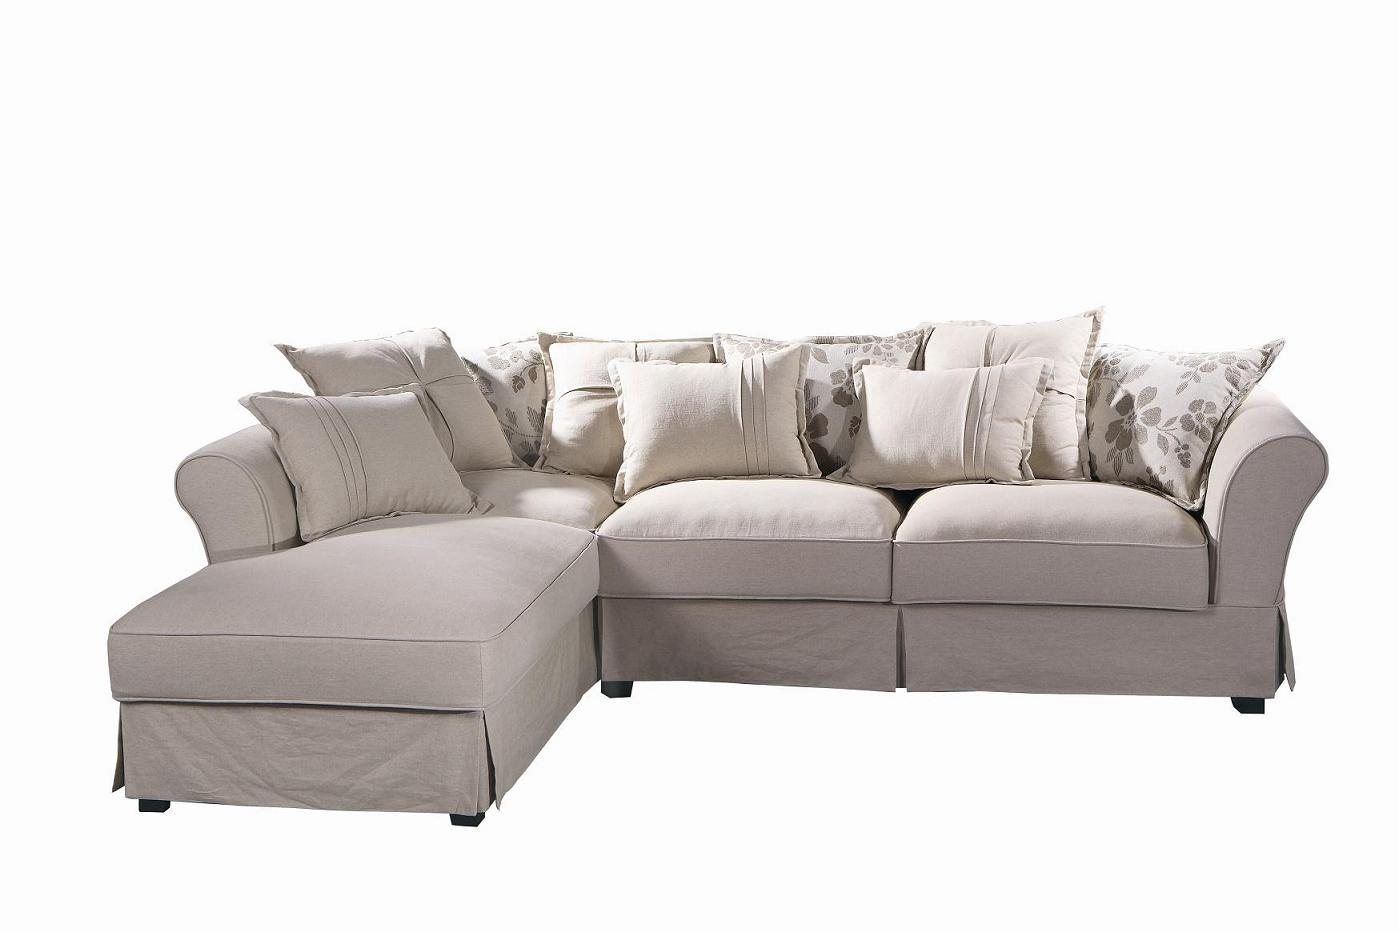 Uncategorized: Inspirations Affordable Sectionals Sectional Couch With Affordable Sectional Sofas (Photo 4 of 10)